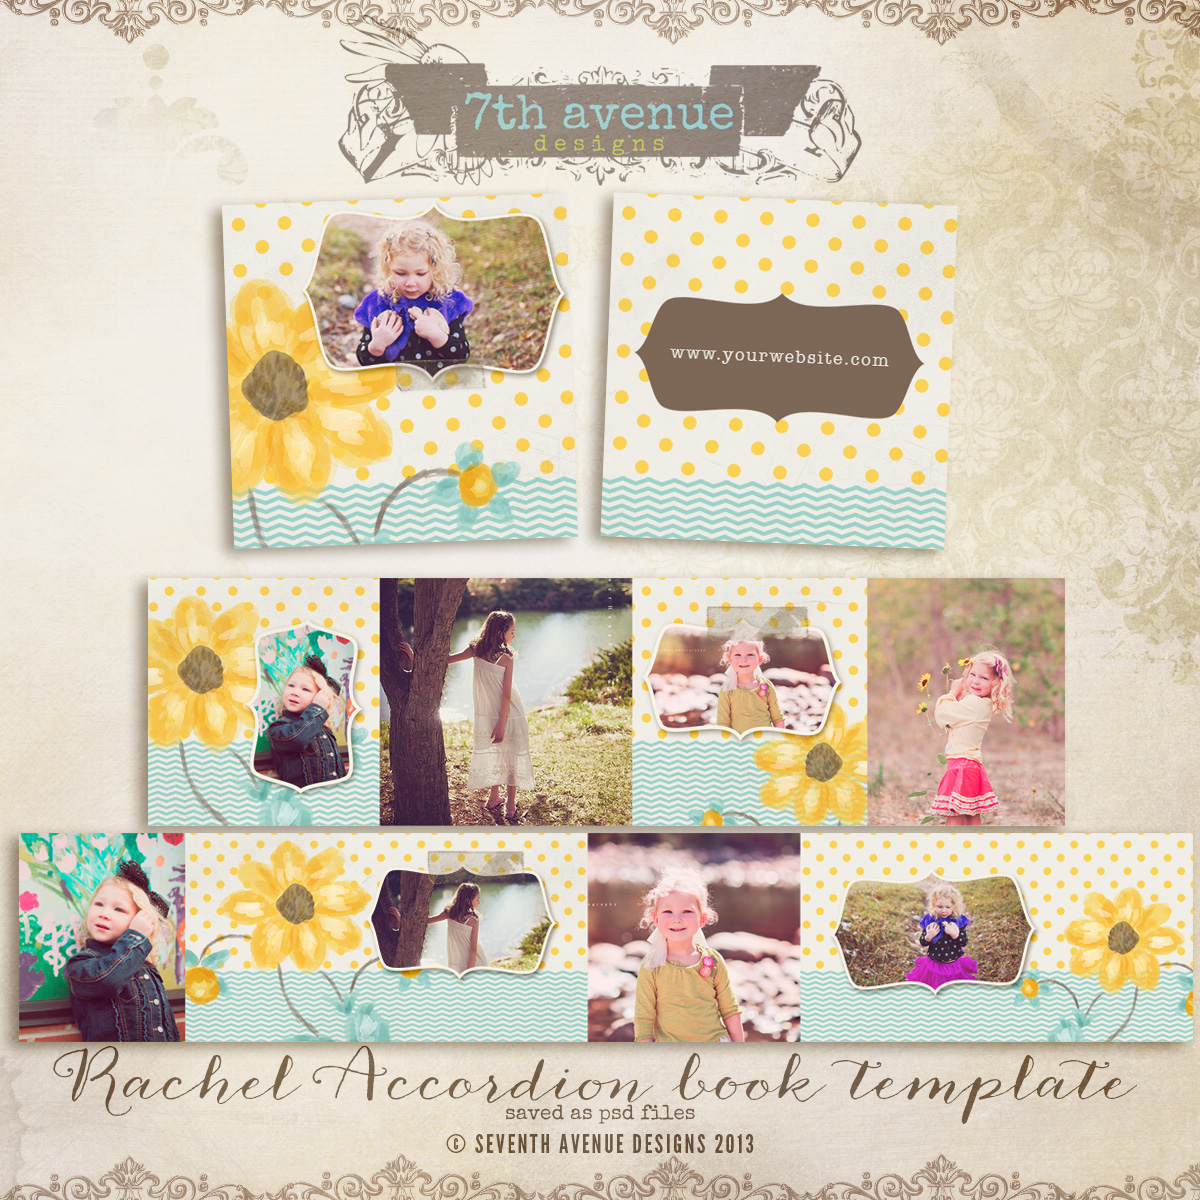 Rachel 3x3 Accordion mini templates